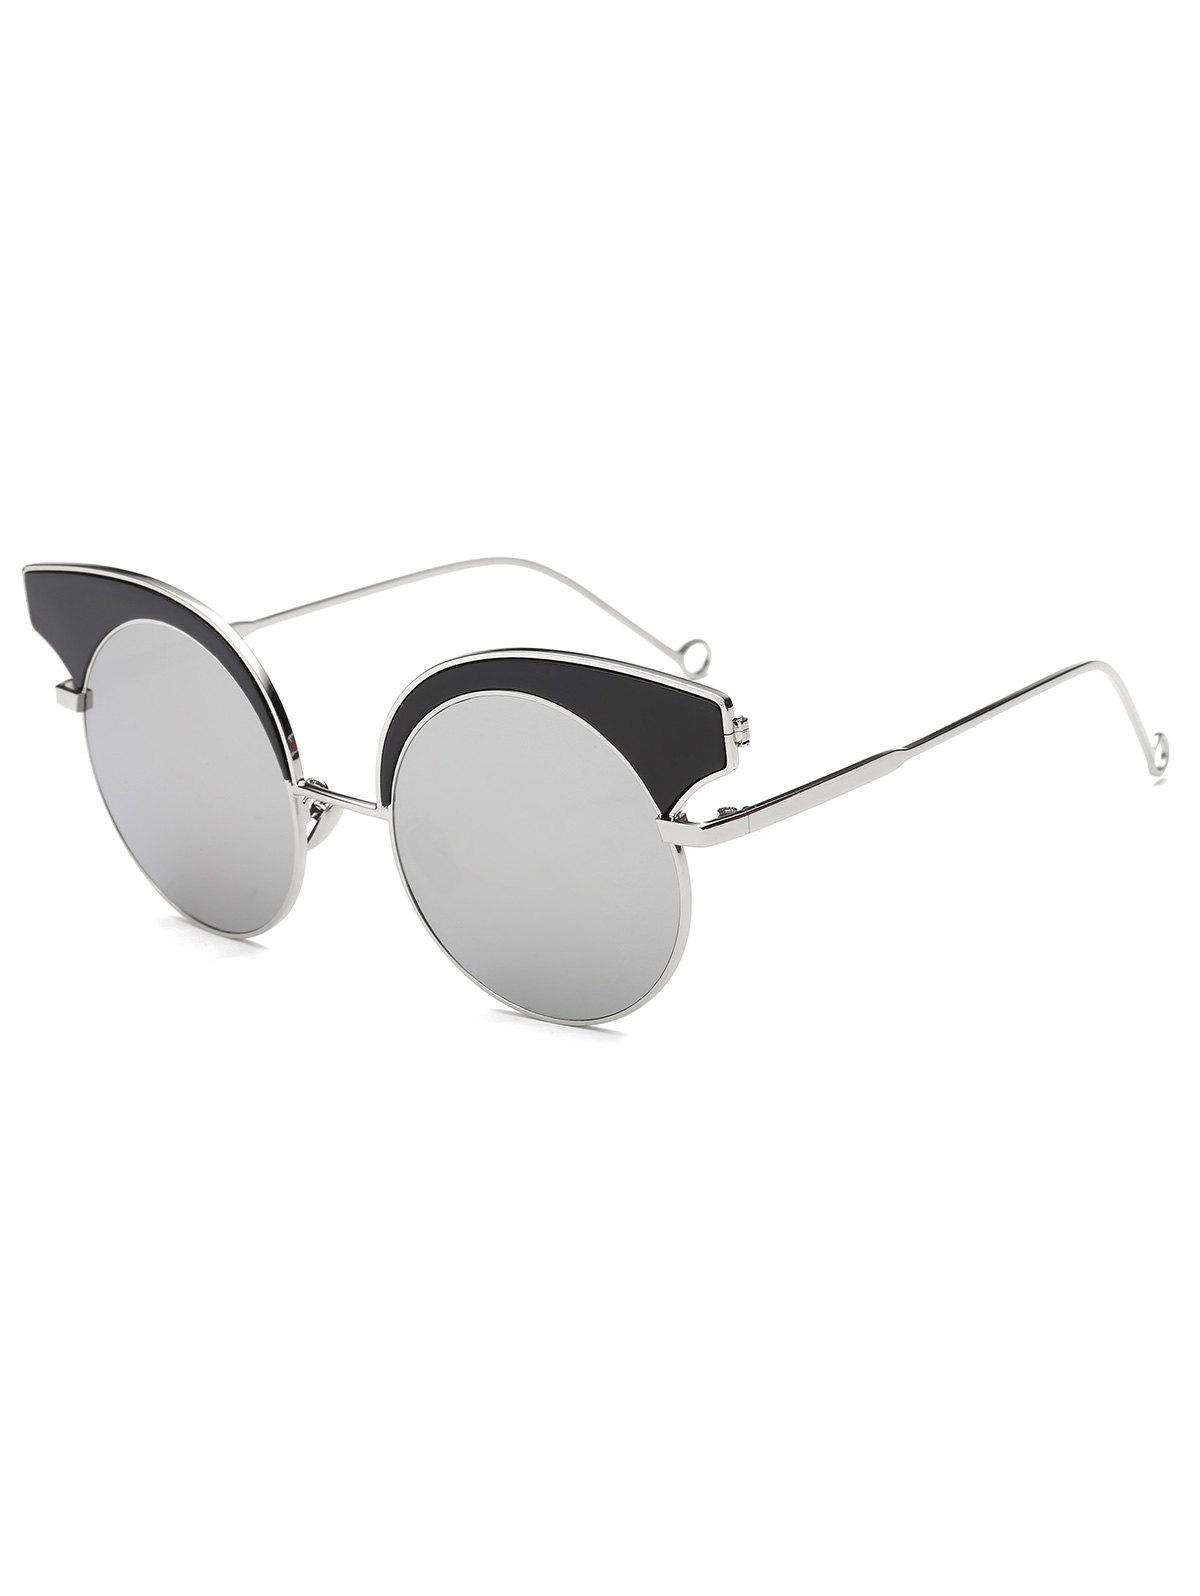 Cool Round Lens Butterfly Mirror Sunglasses cool round lens butterfly mirror sunglasses